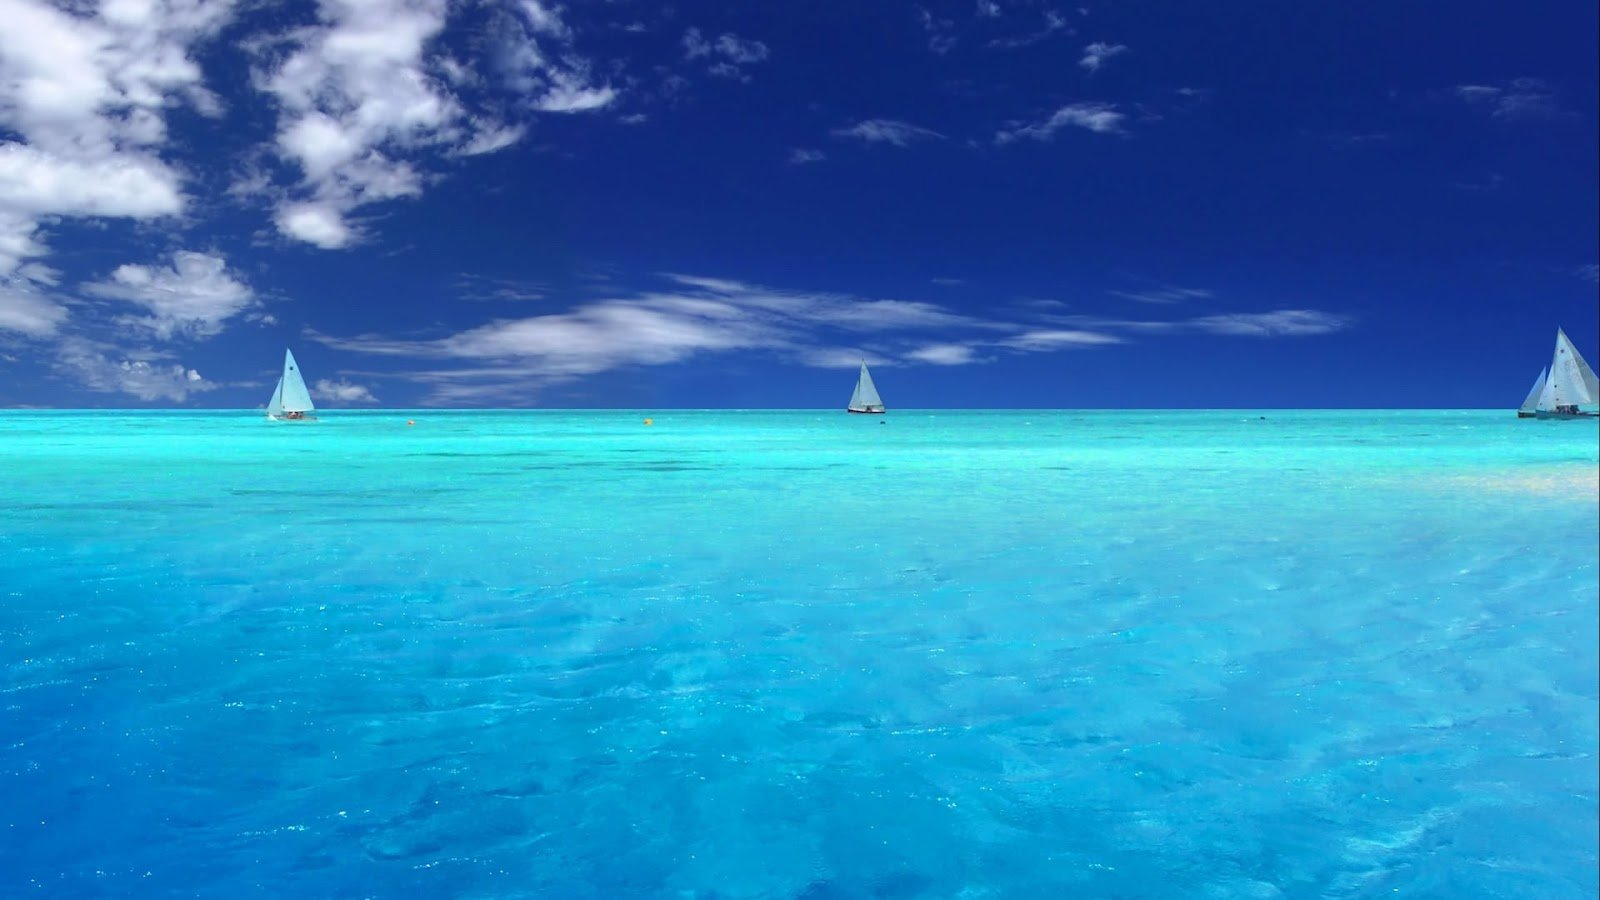 Blue Ocean Backgrounds